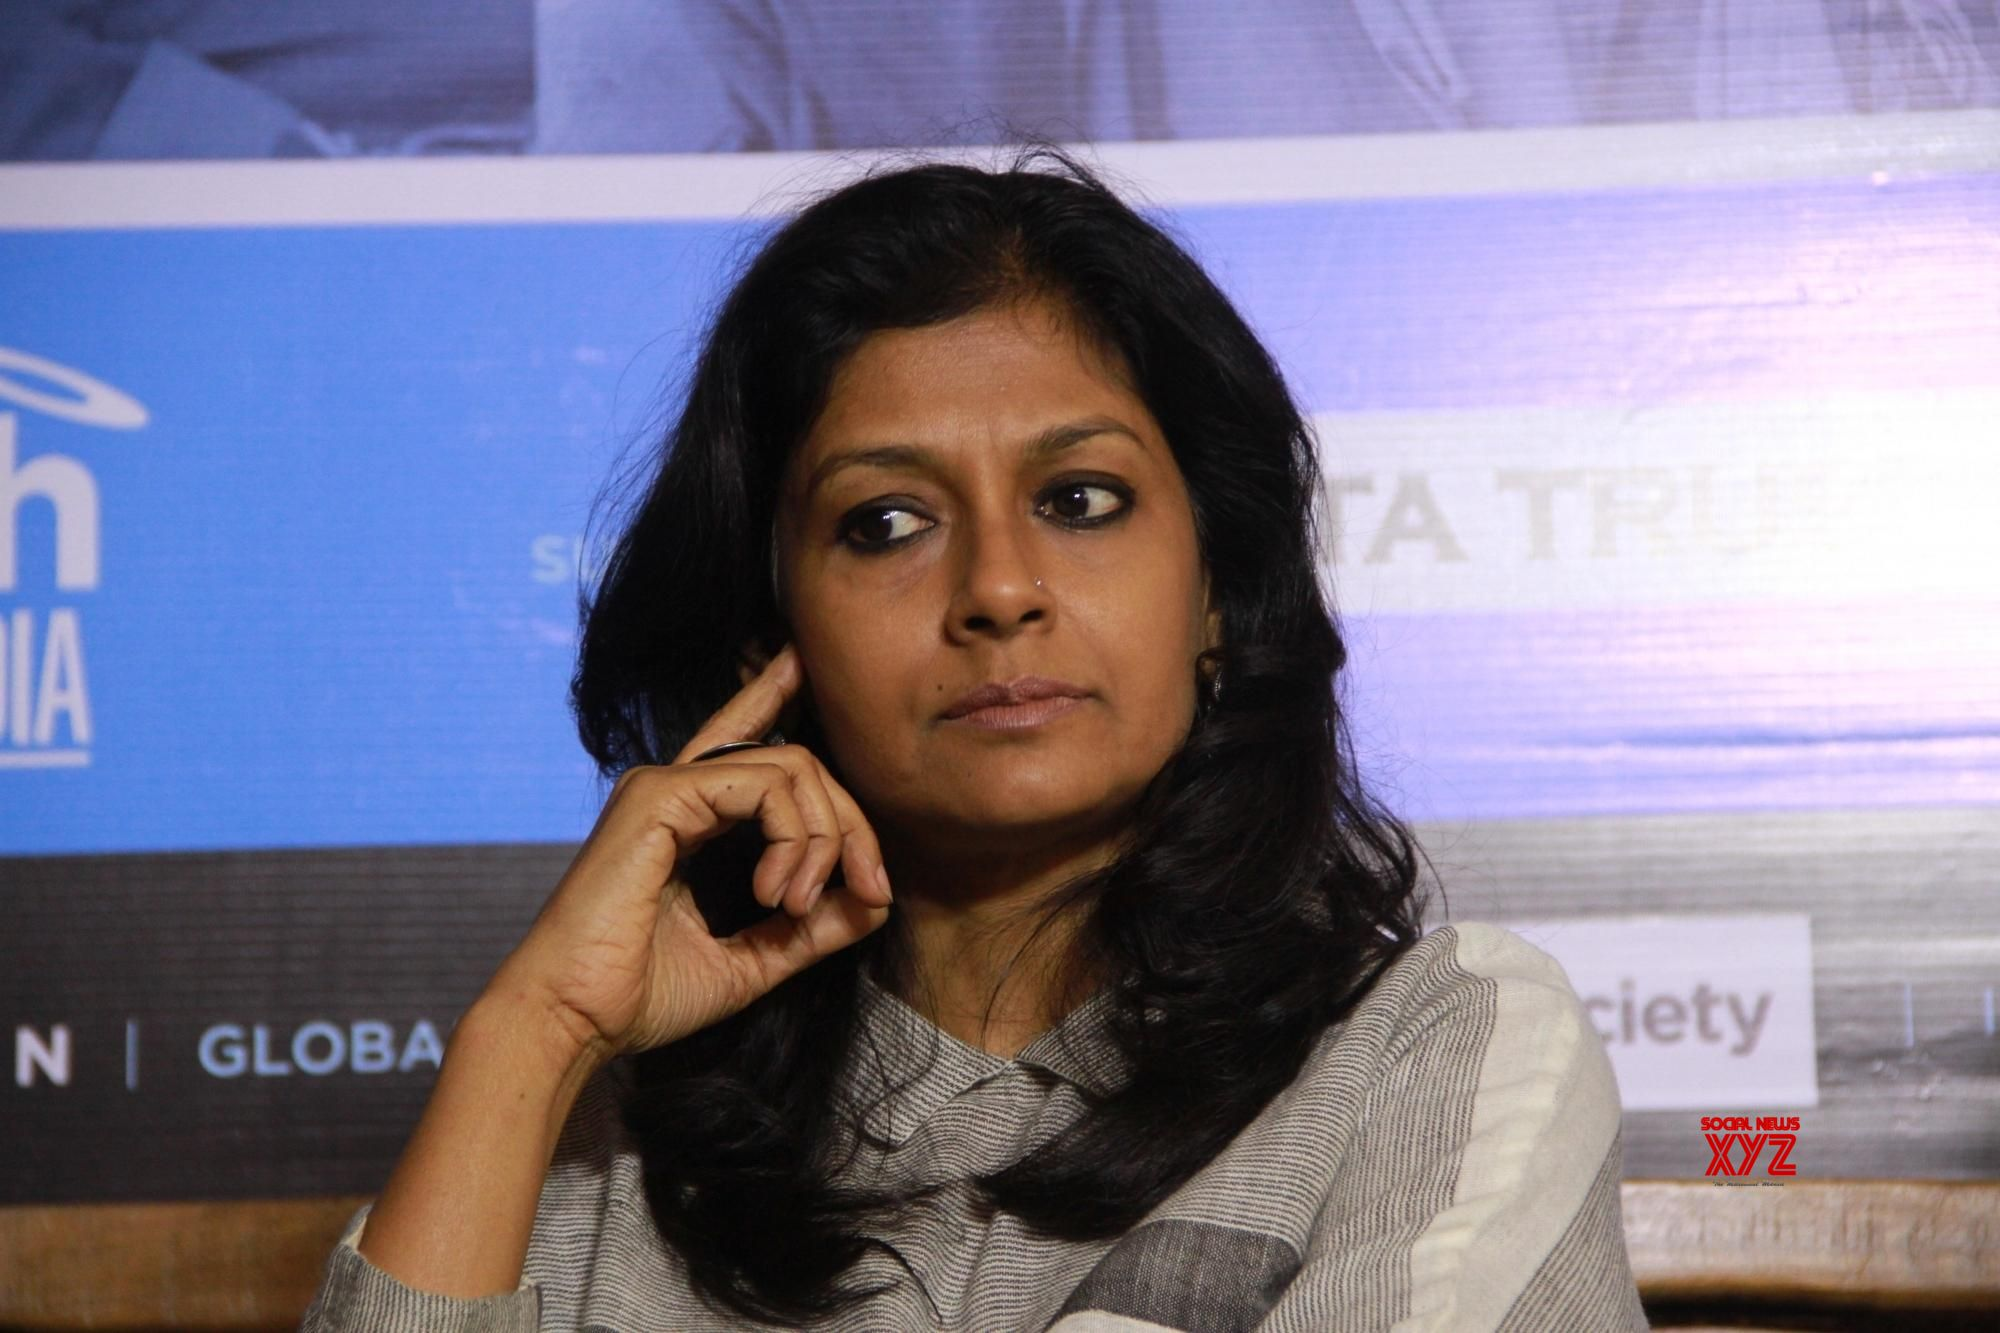 That 'Manto' got made is a miracle: Nandita Das